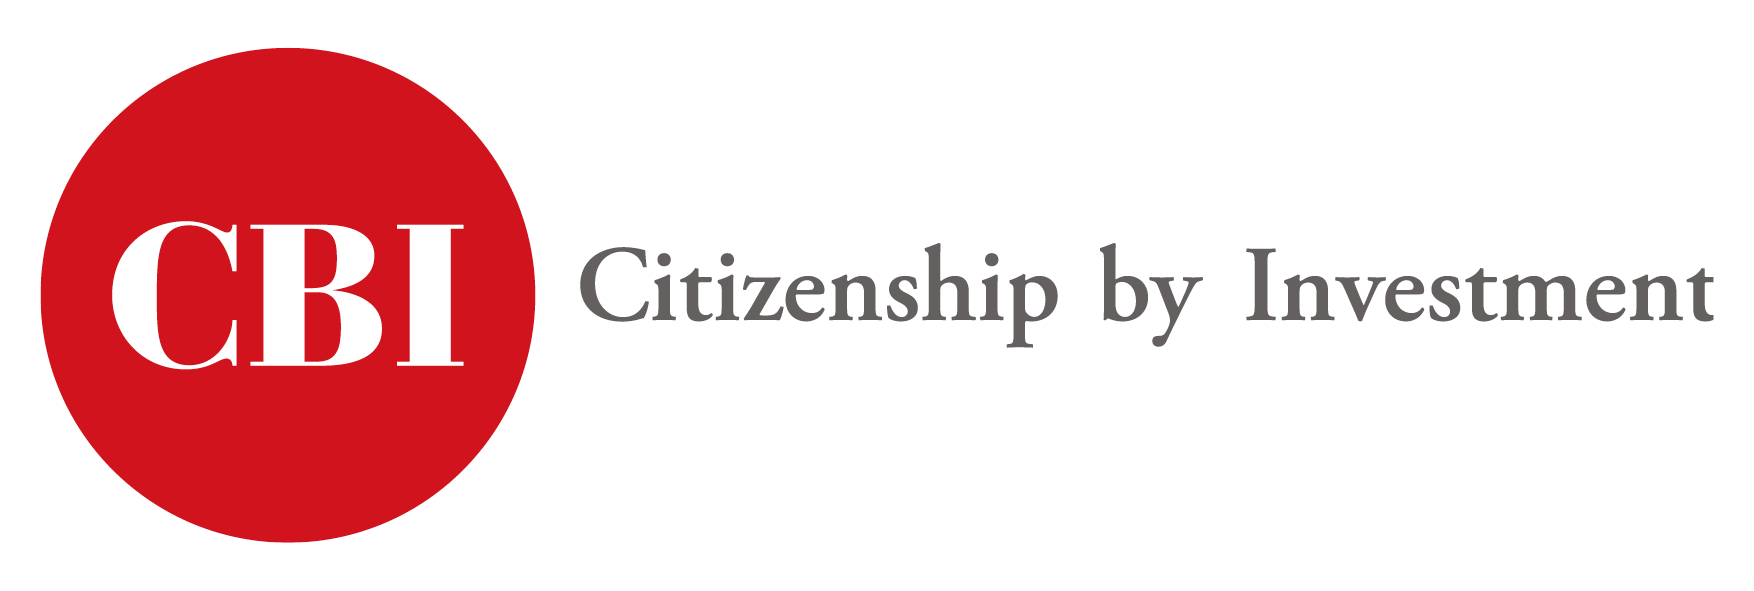 CBI – Citizenship by Investment